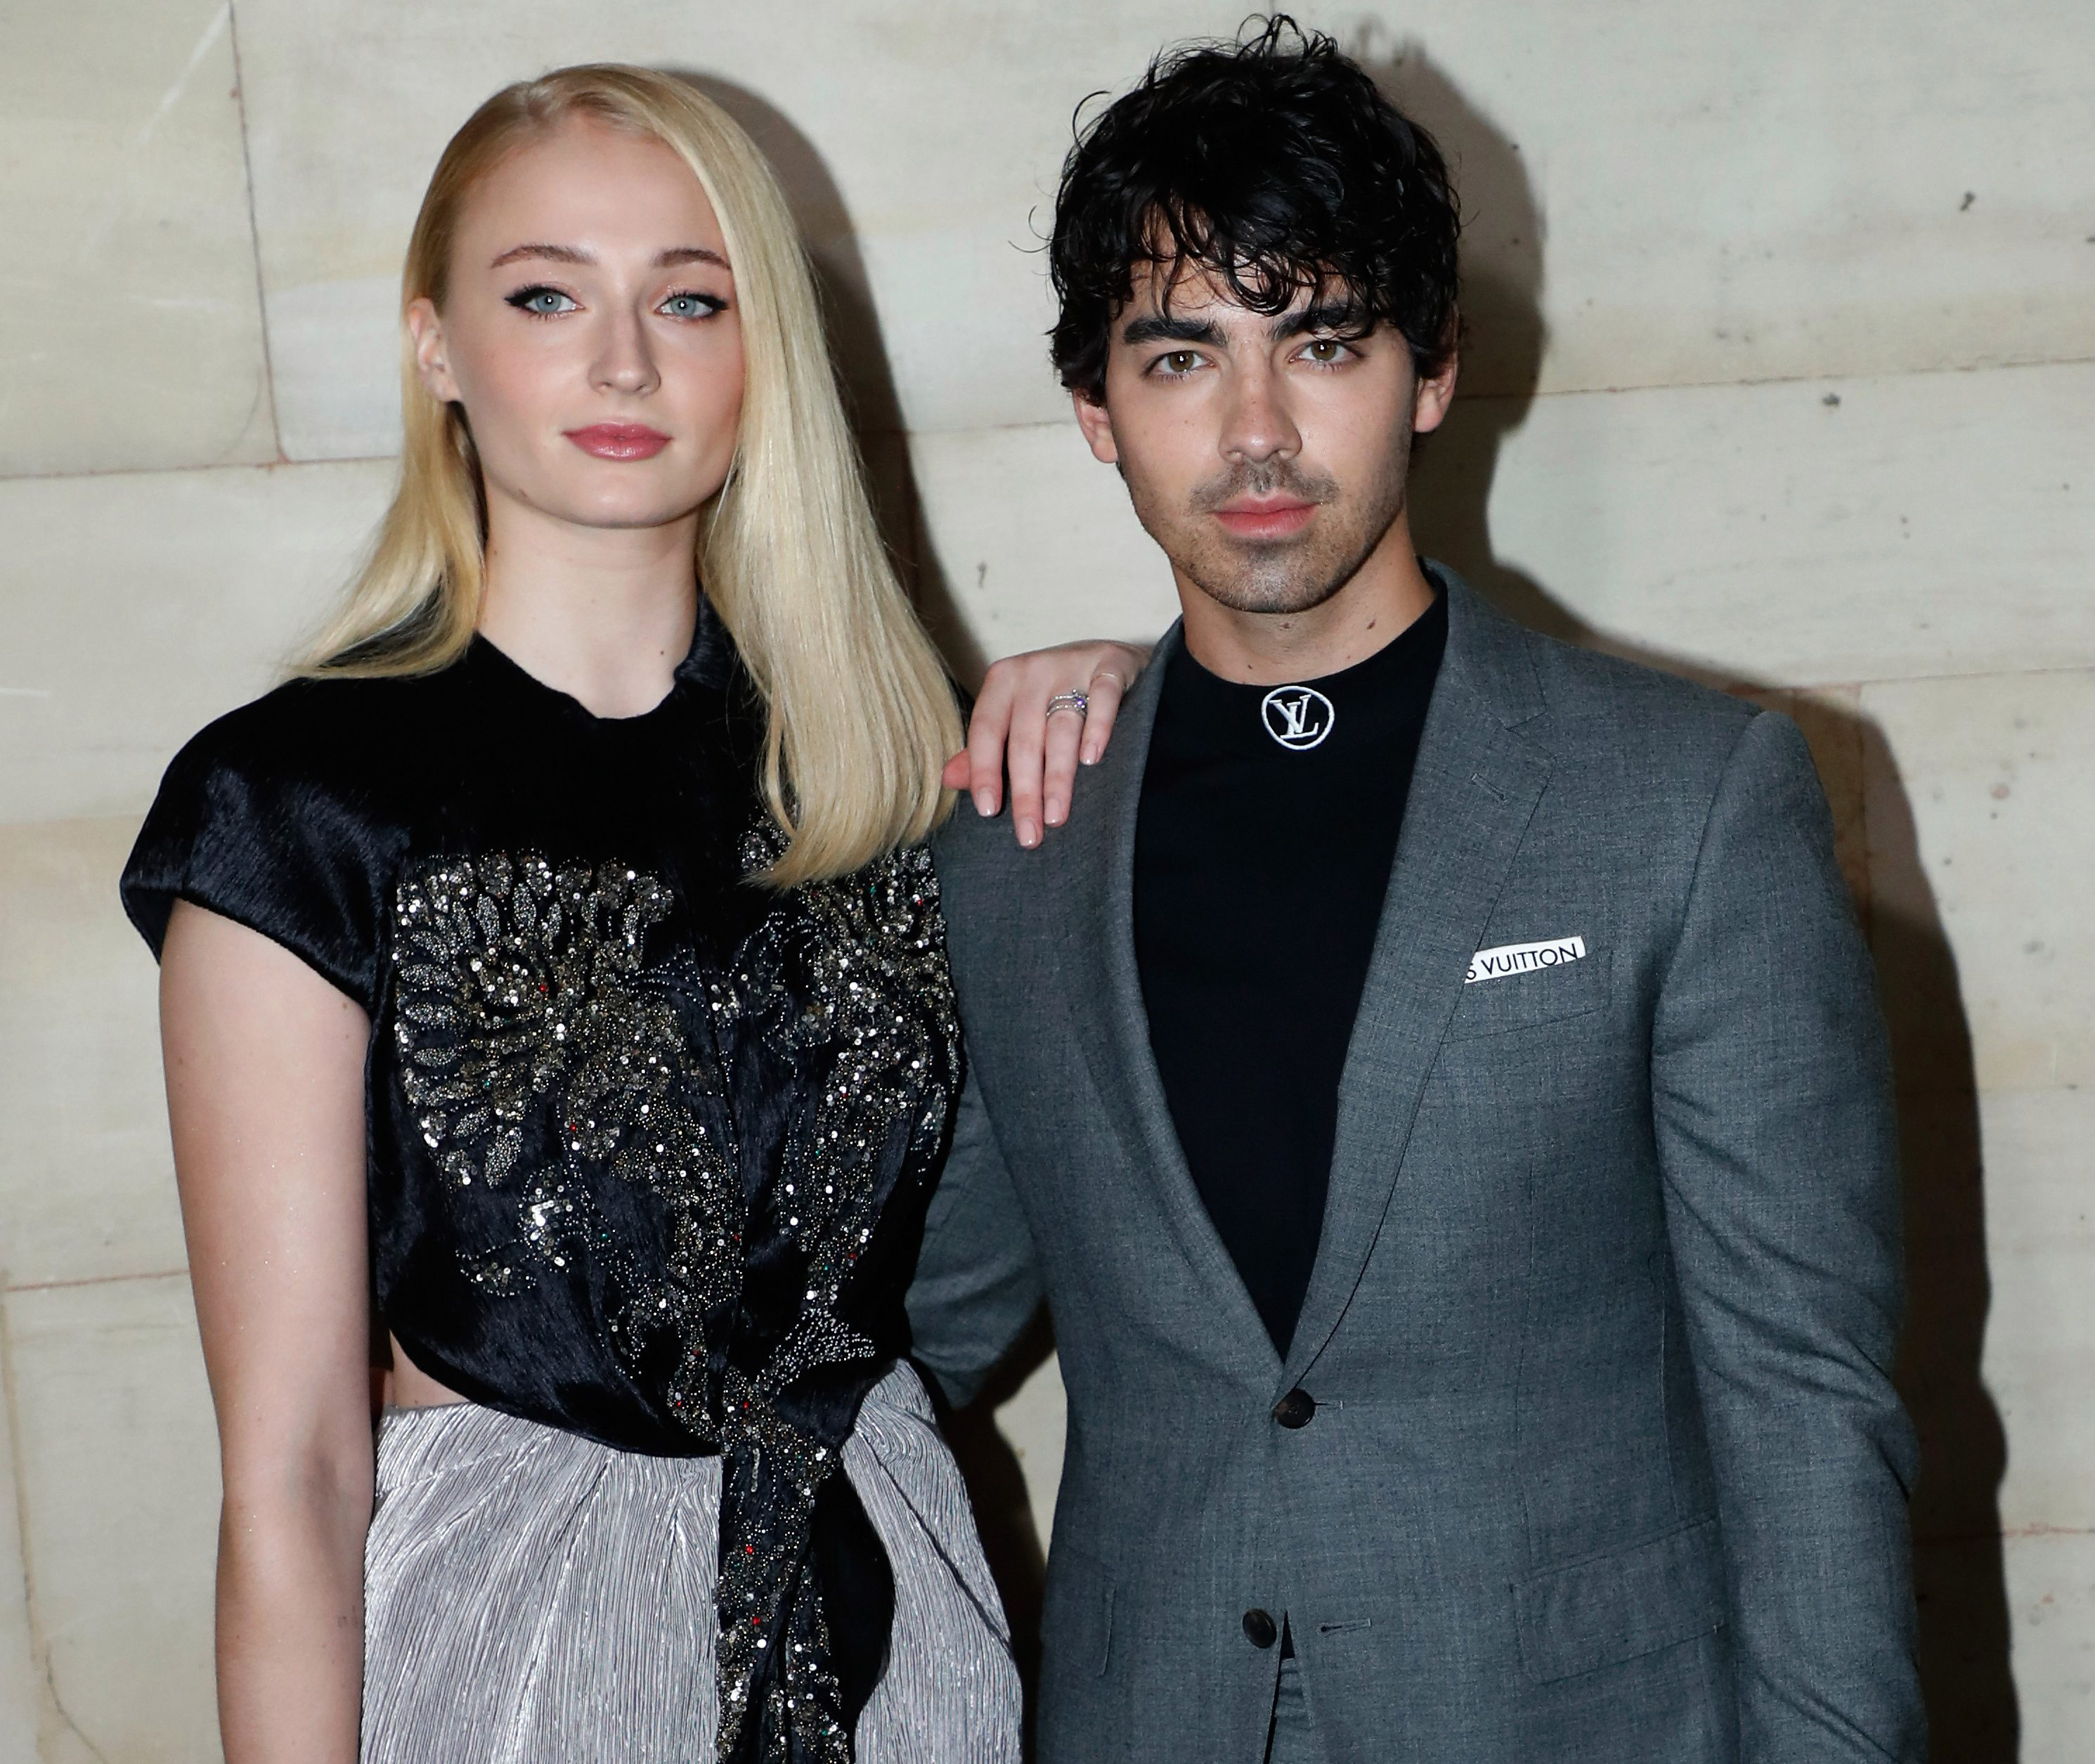 Game Of Thrones' Sophie Turner confirms she's had romances with girls as she prepares to marry Joe Jonas